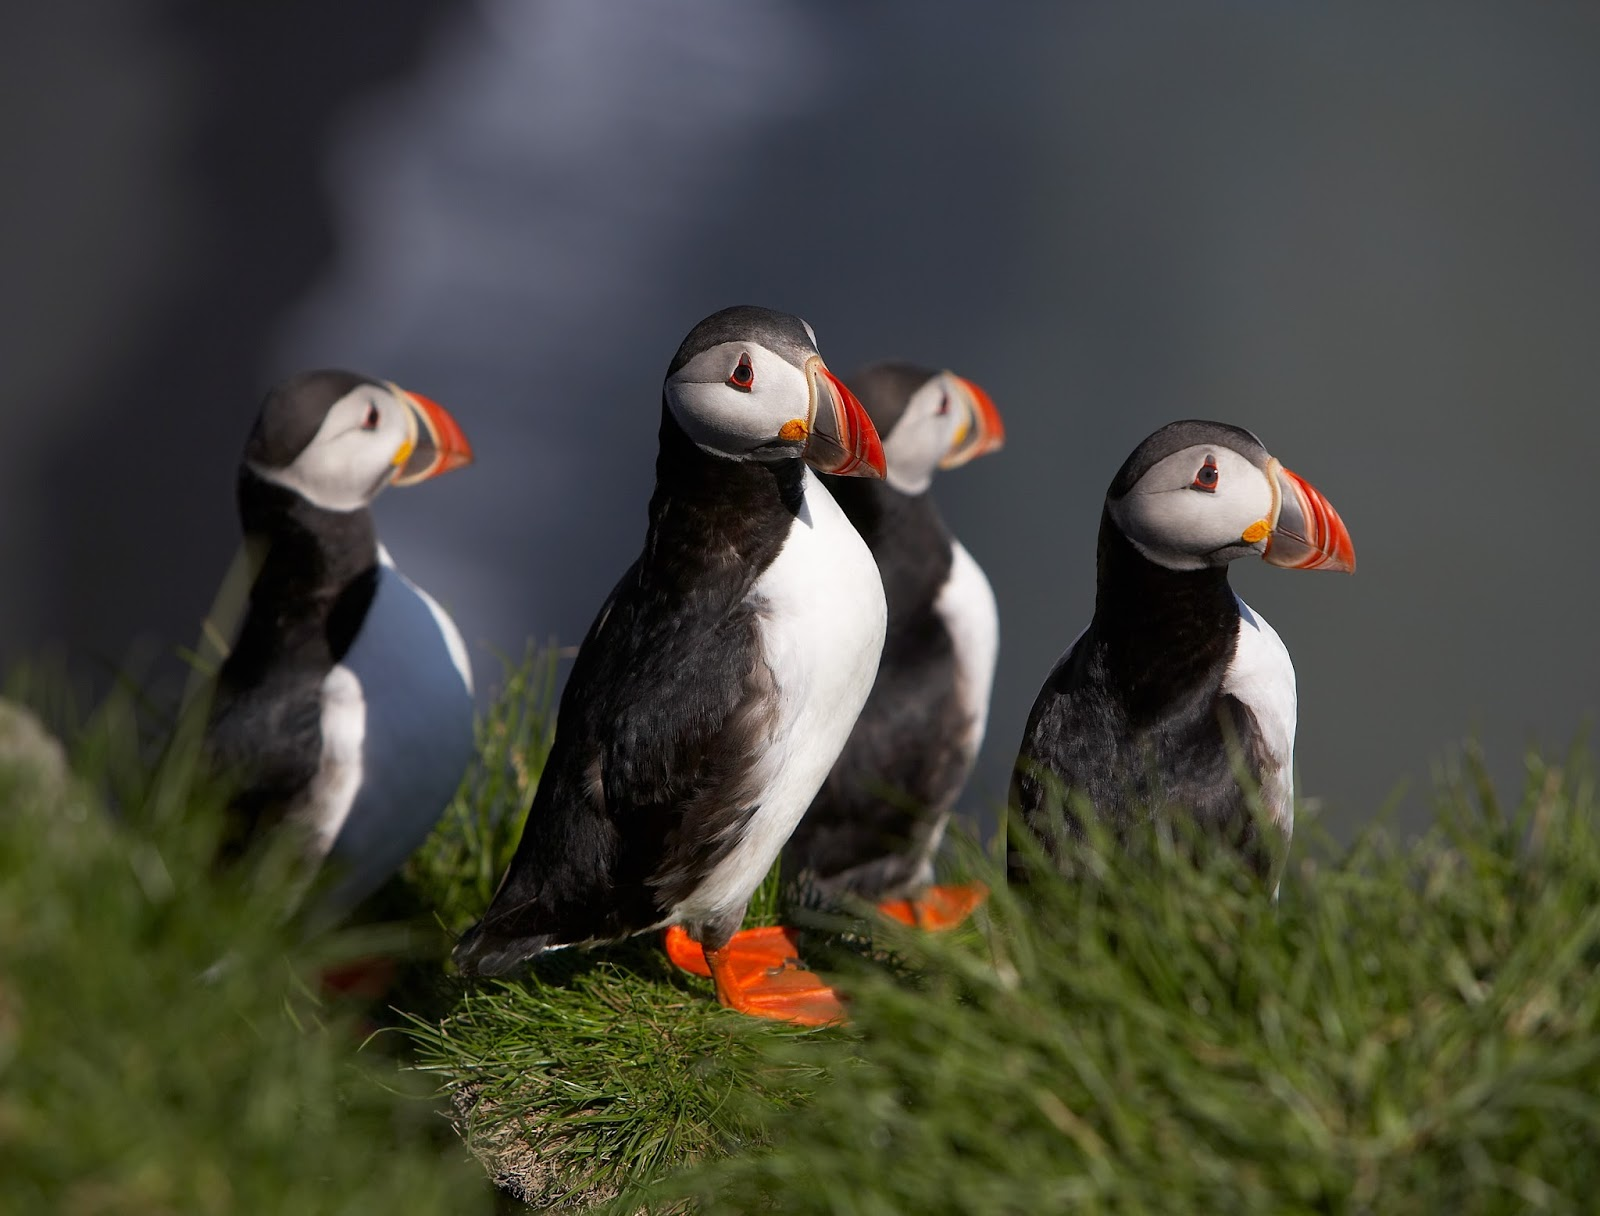 Iceland: A Group of Puffins